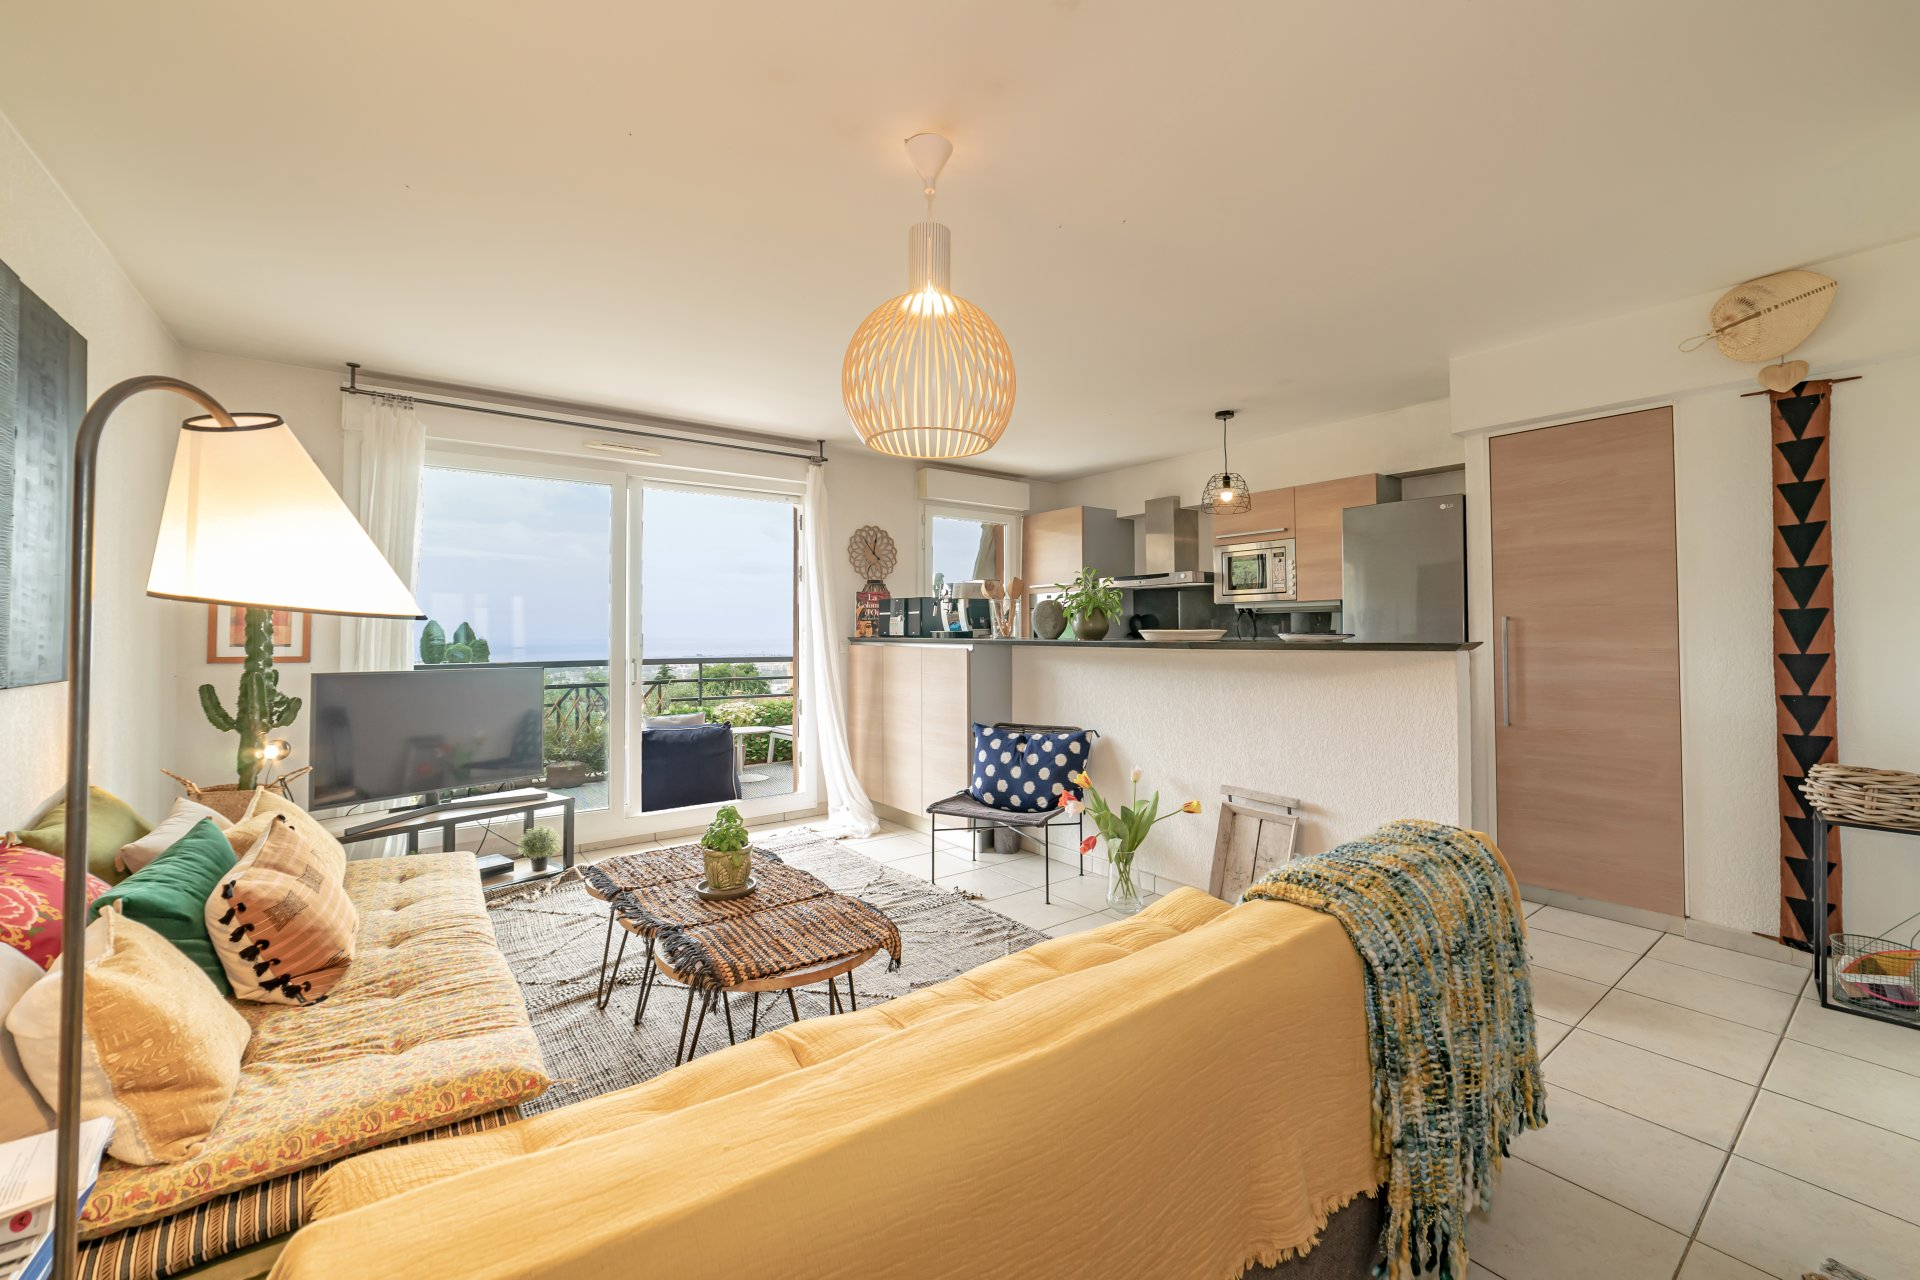 2 bedroom apartment with terrace and garage